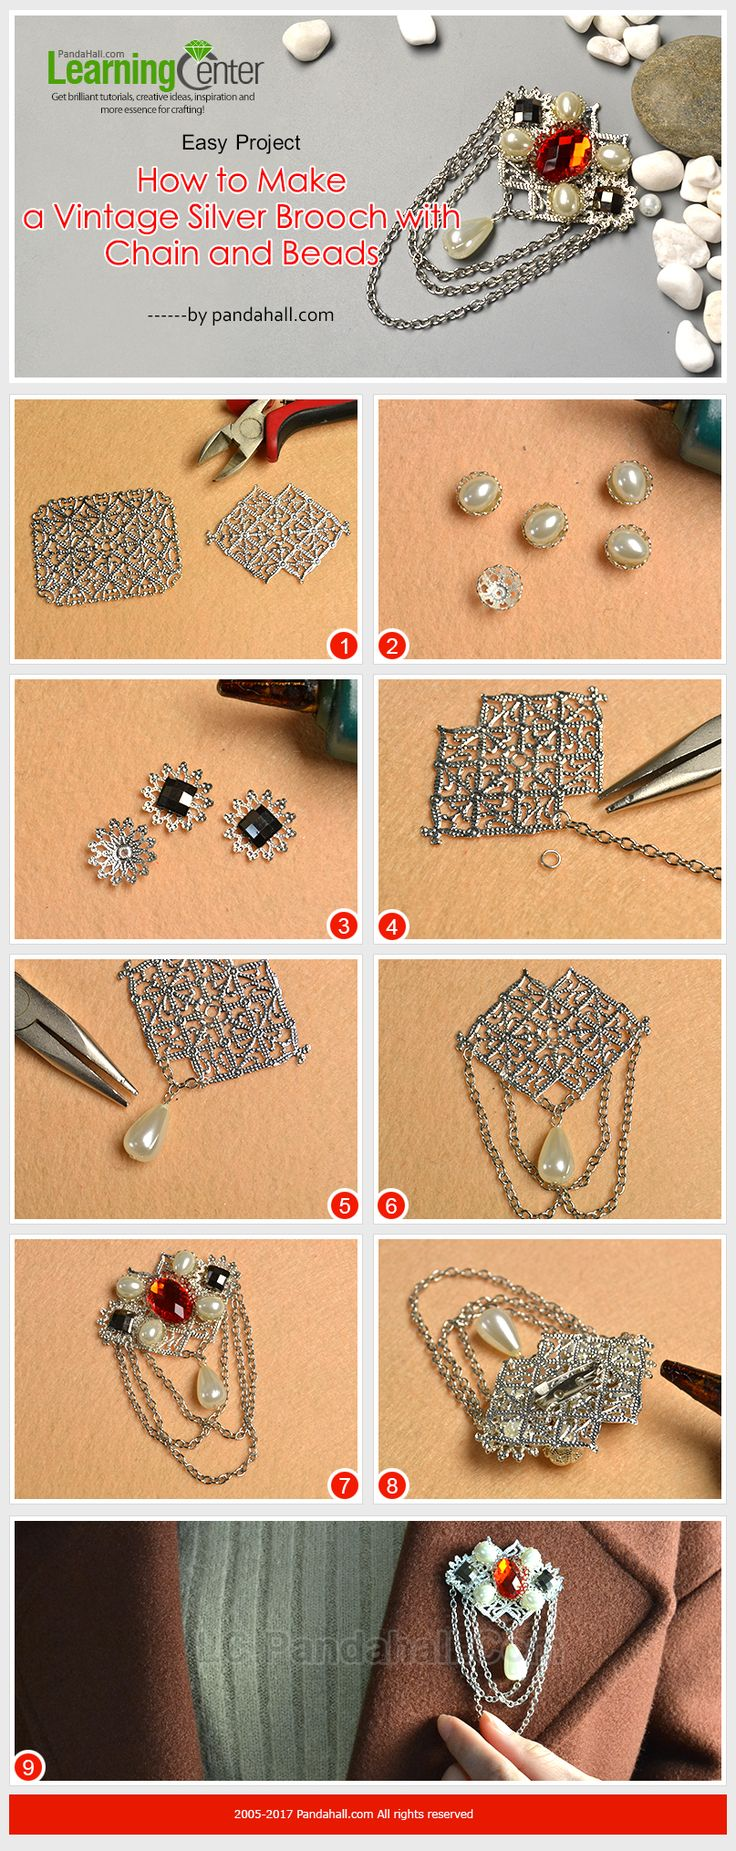 Easy Project - How to Make a Vintage Silver Brooch with Chain and Beads